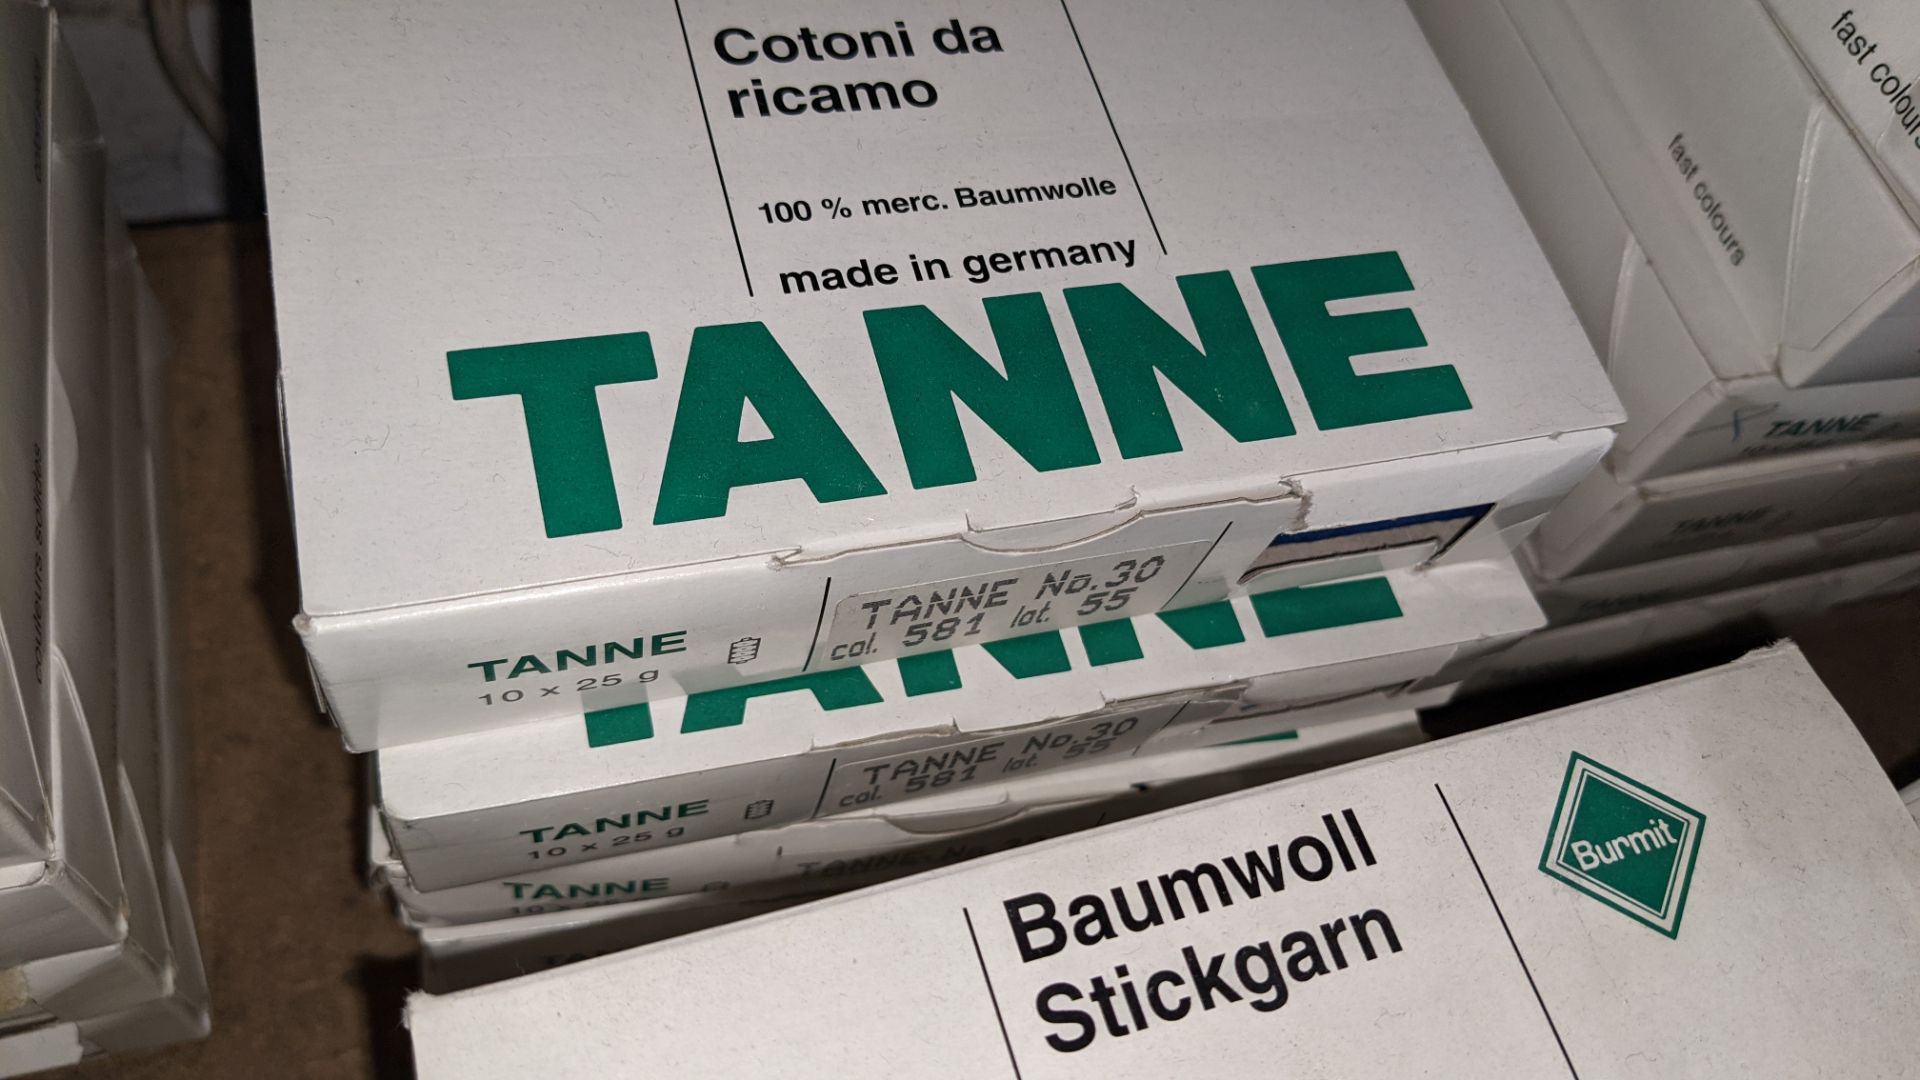 15 boxes of Madeira Tanne (Burmit) cotton embroidery thread - Image 5 of 8